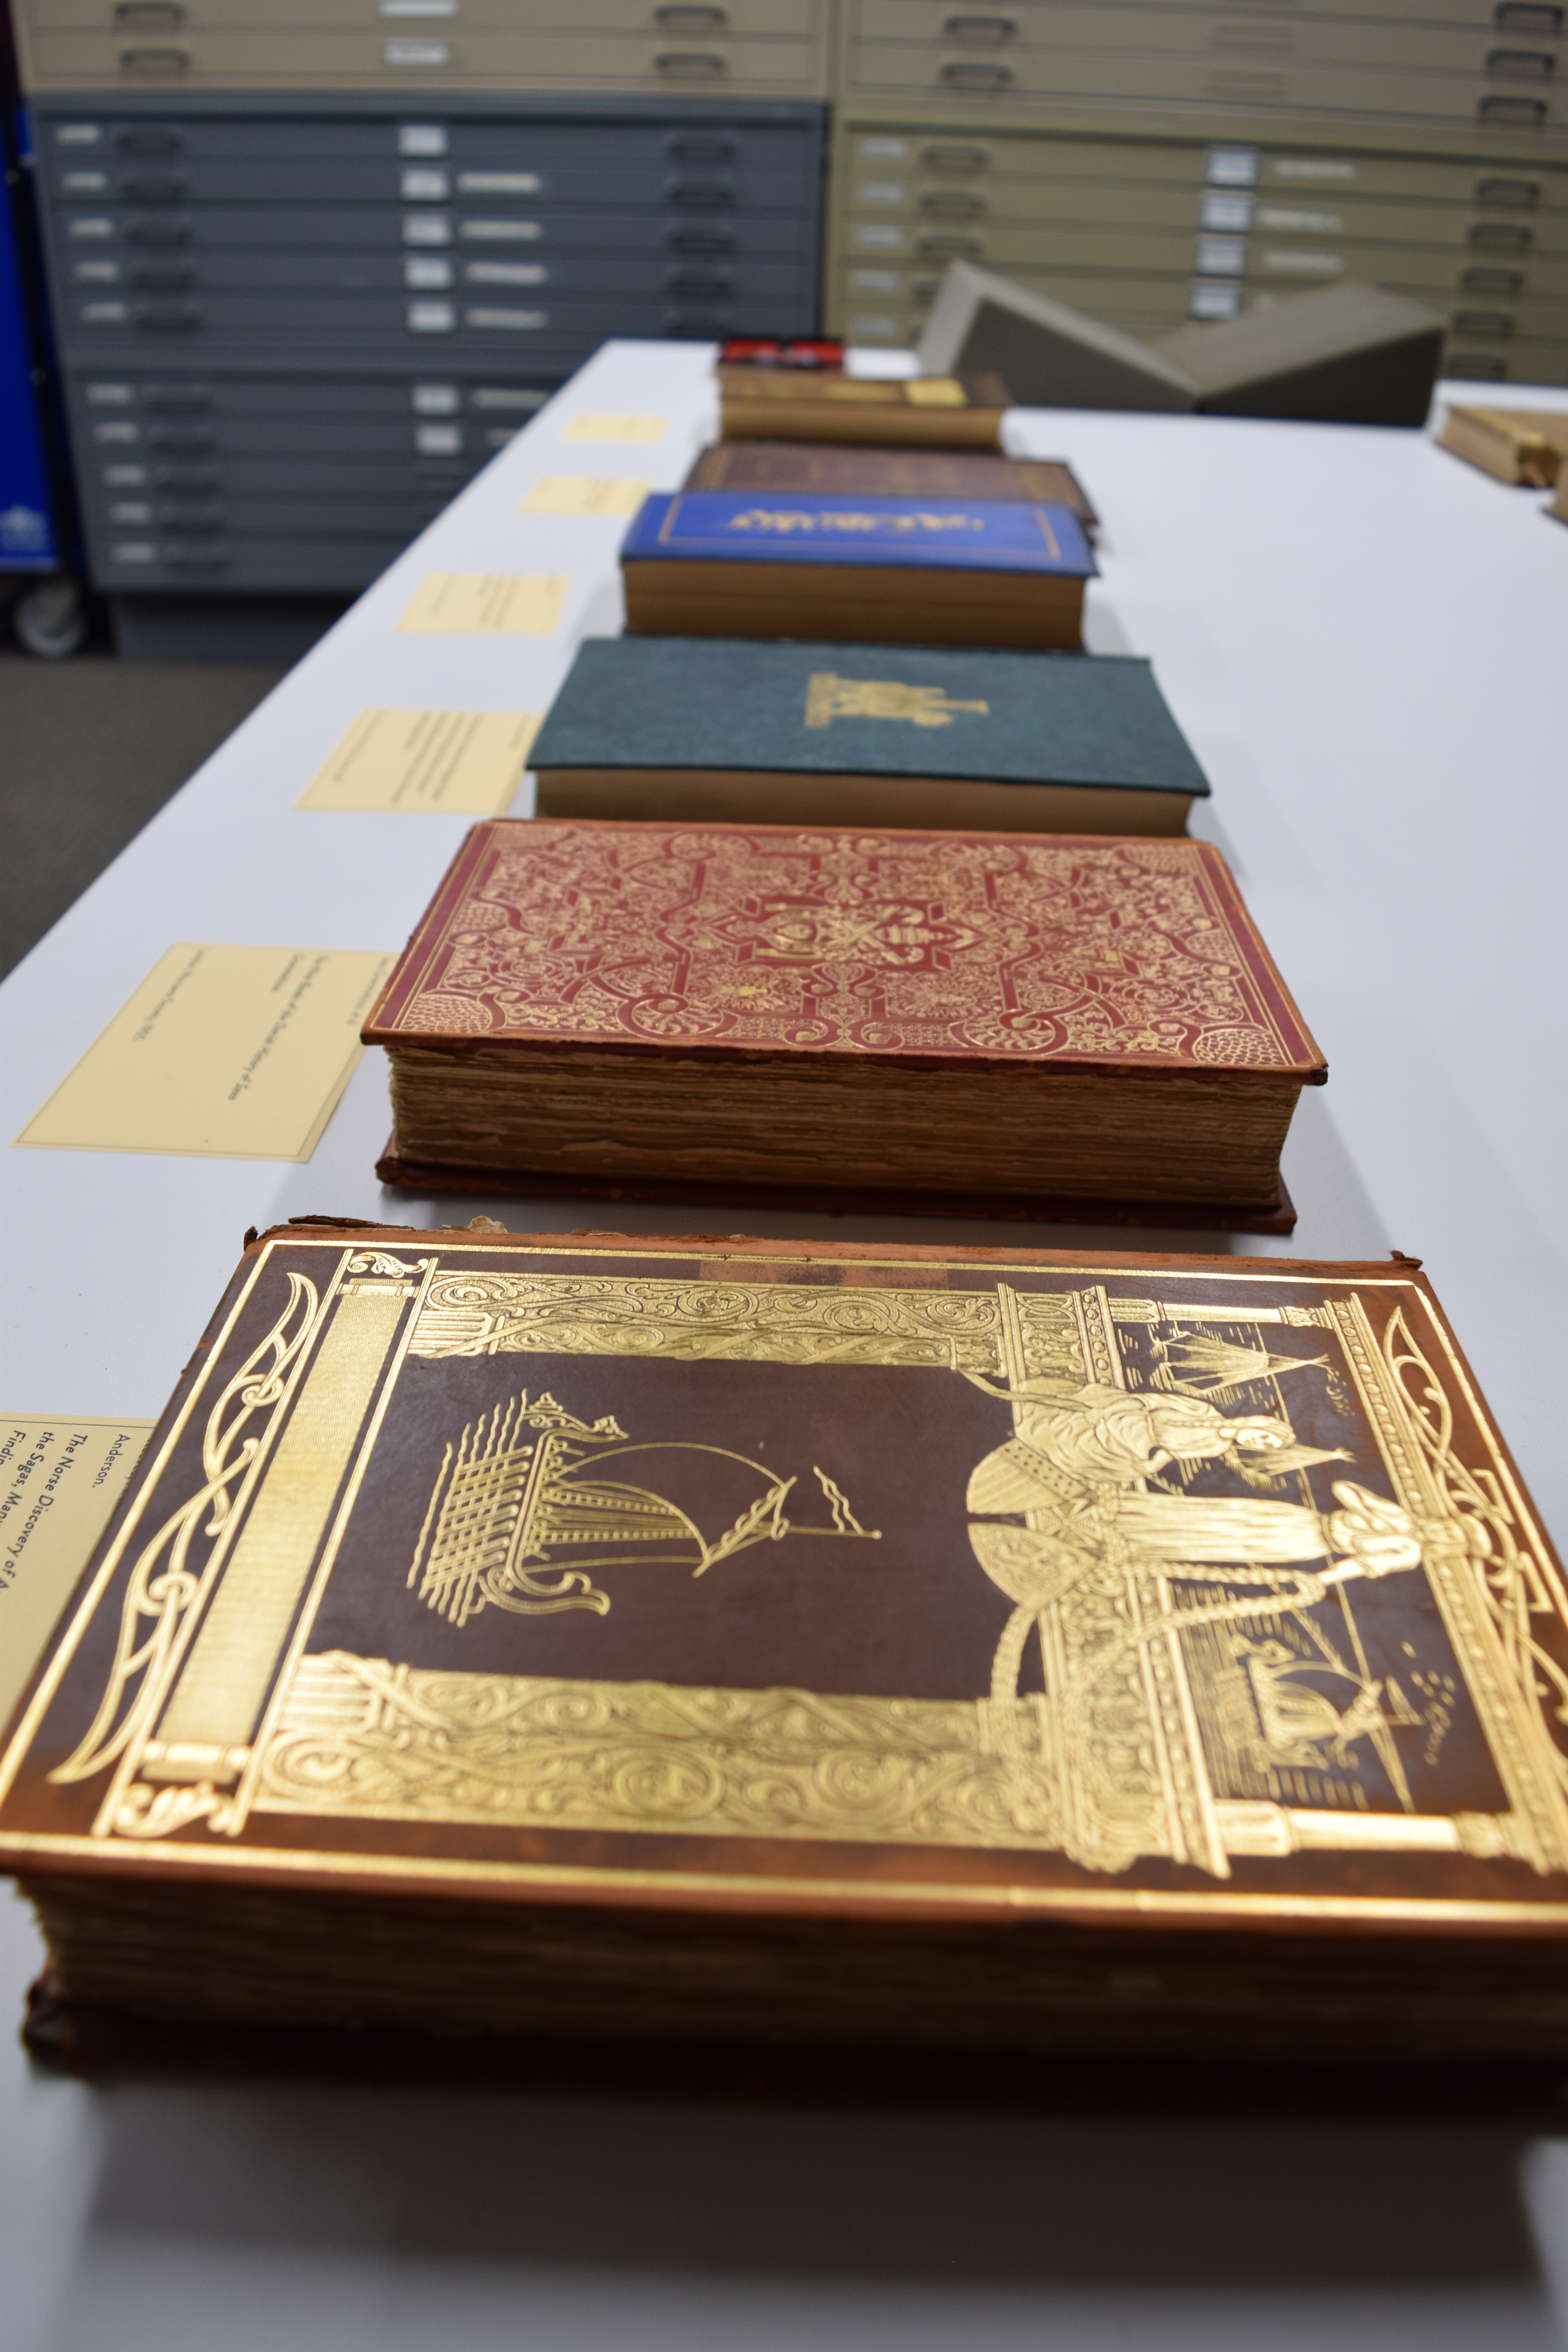 An assortment of rare books on a table